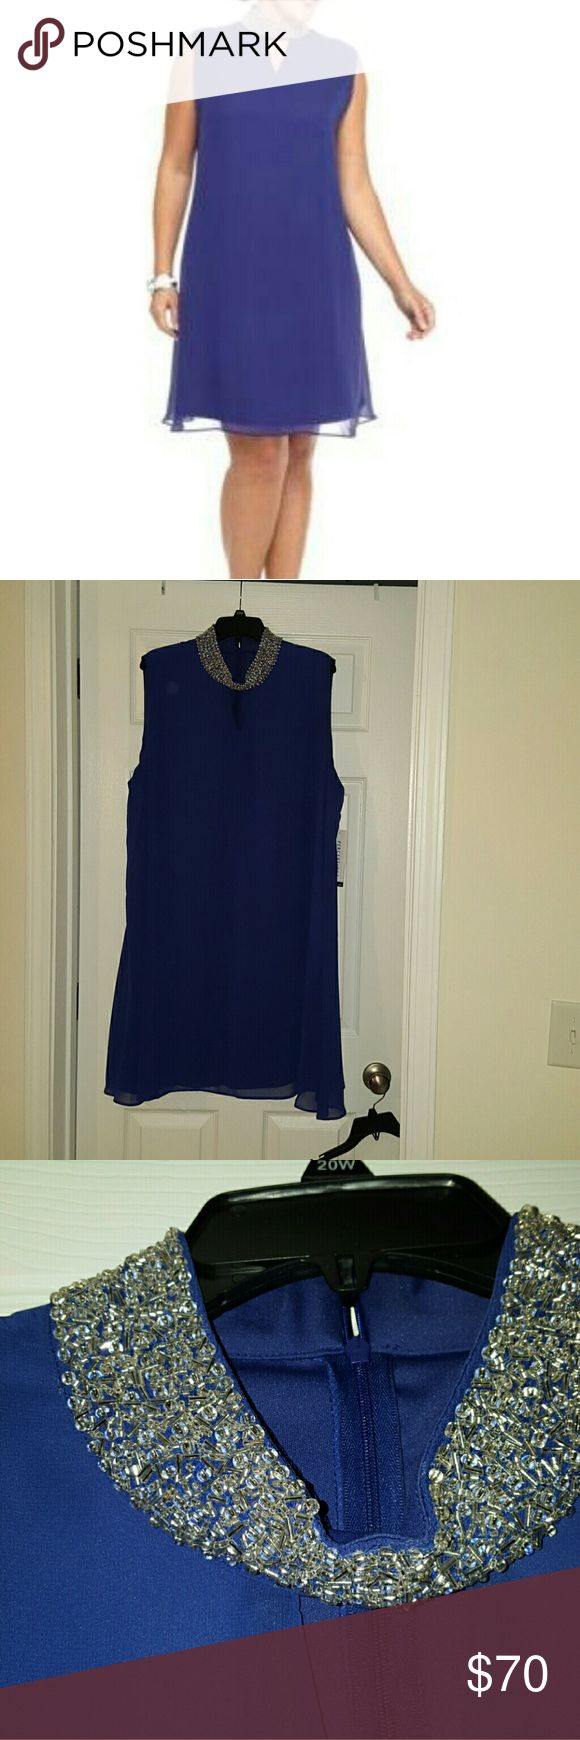 NWT! PERCEPTIONS NEW YORK PLUS SIZE 22W DRESS Color : Cobalt                                 ***** PRICE IS FIRM! *****                              ***** I DON'T TRADE ***** PERCEPTIONS NEW YORK  Dresses